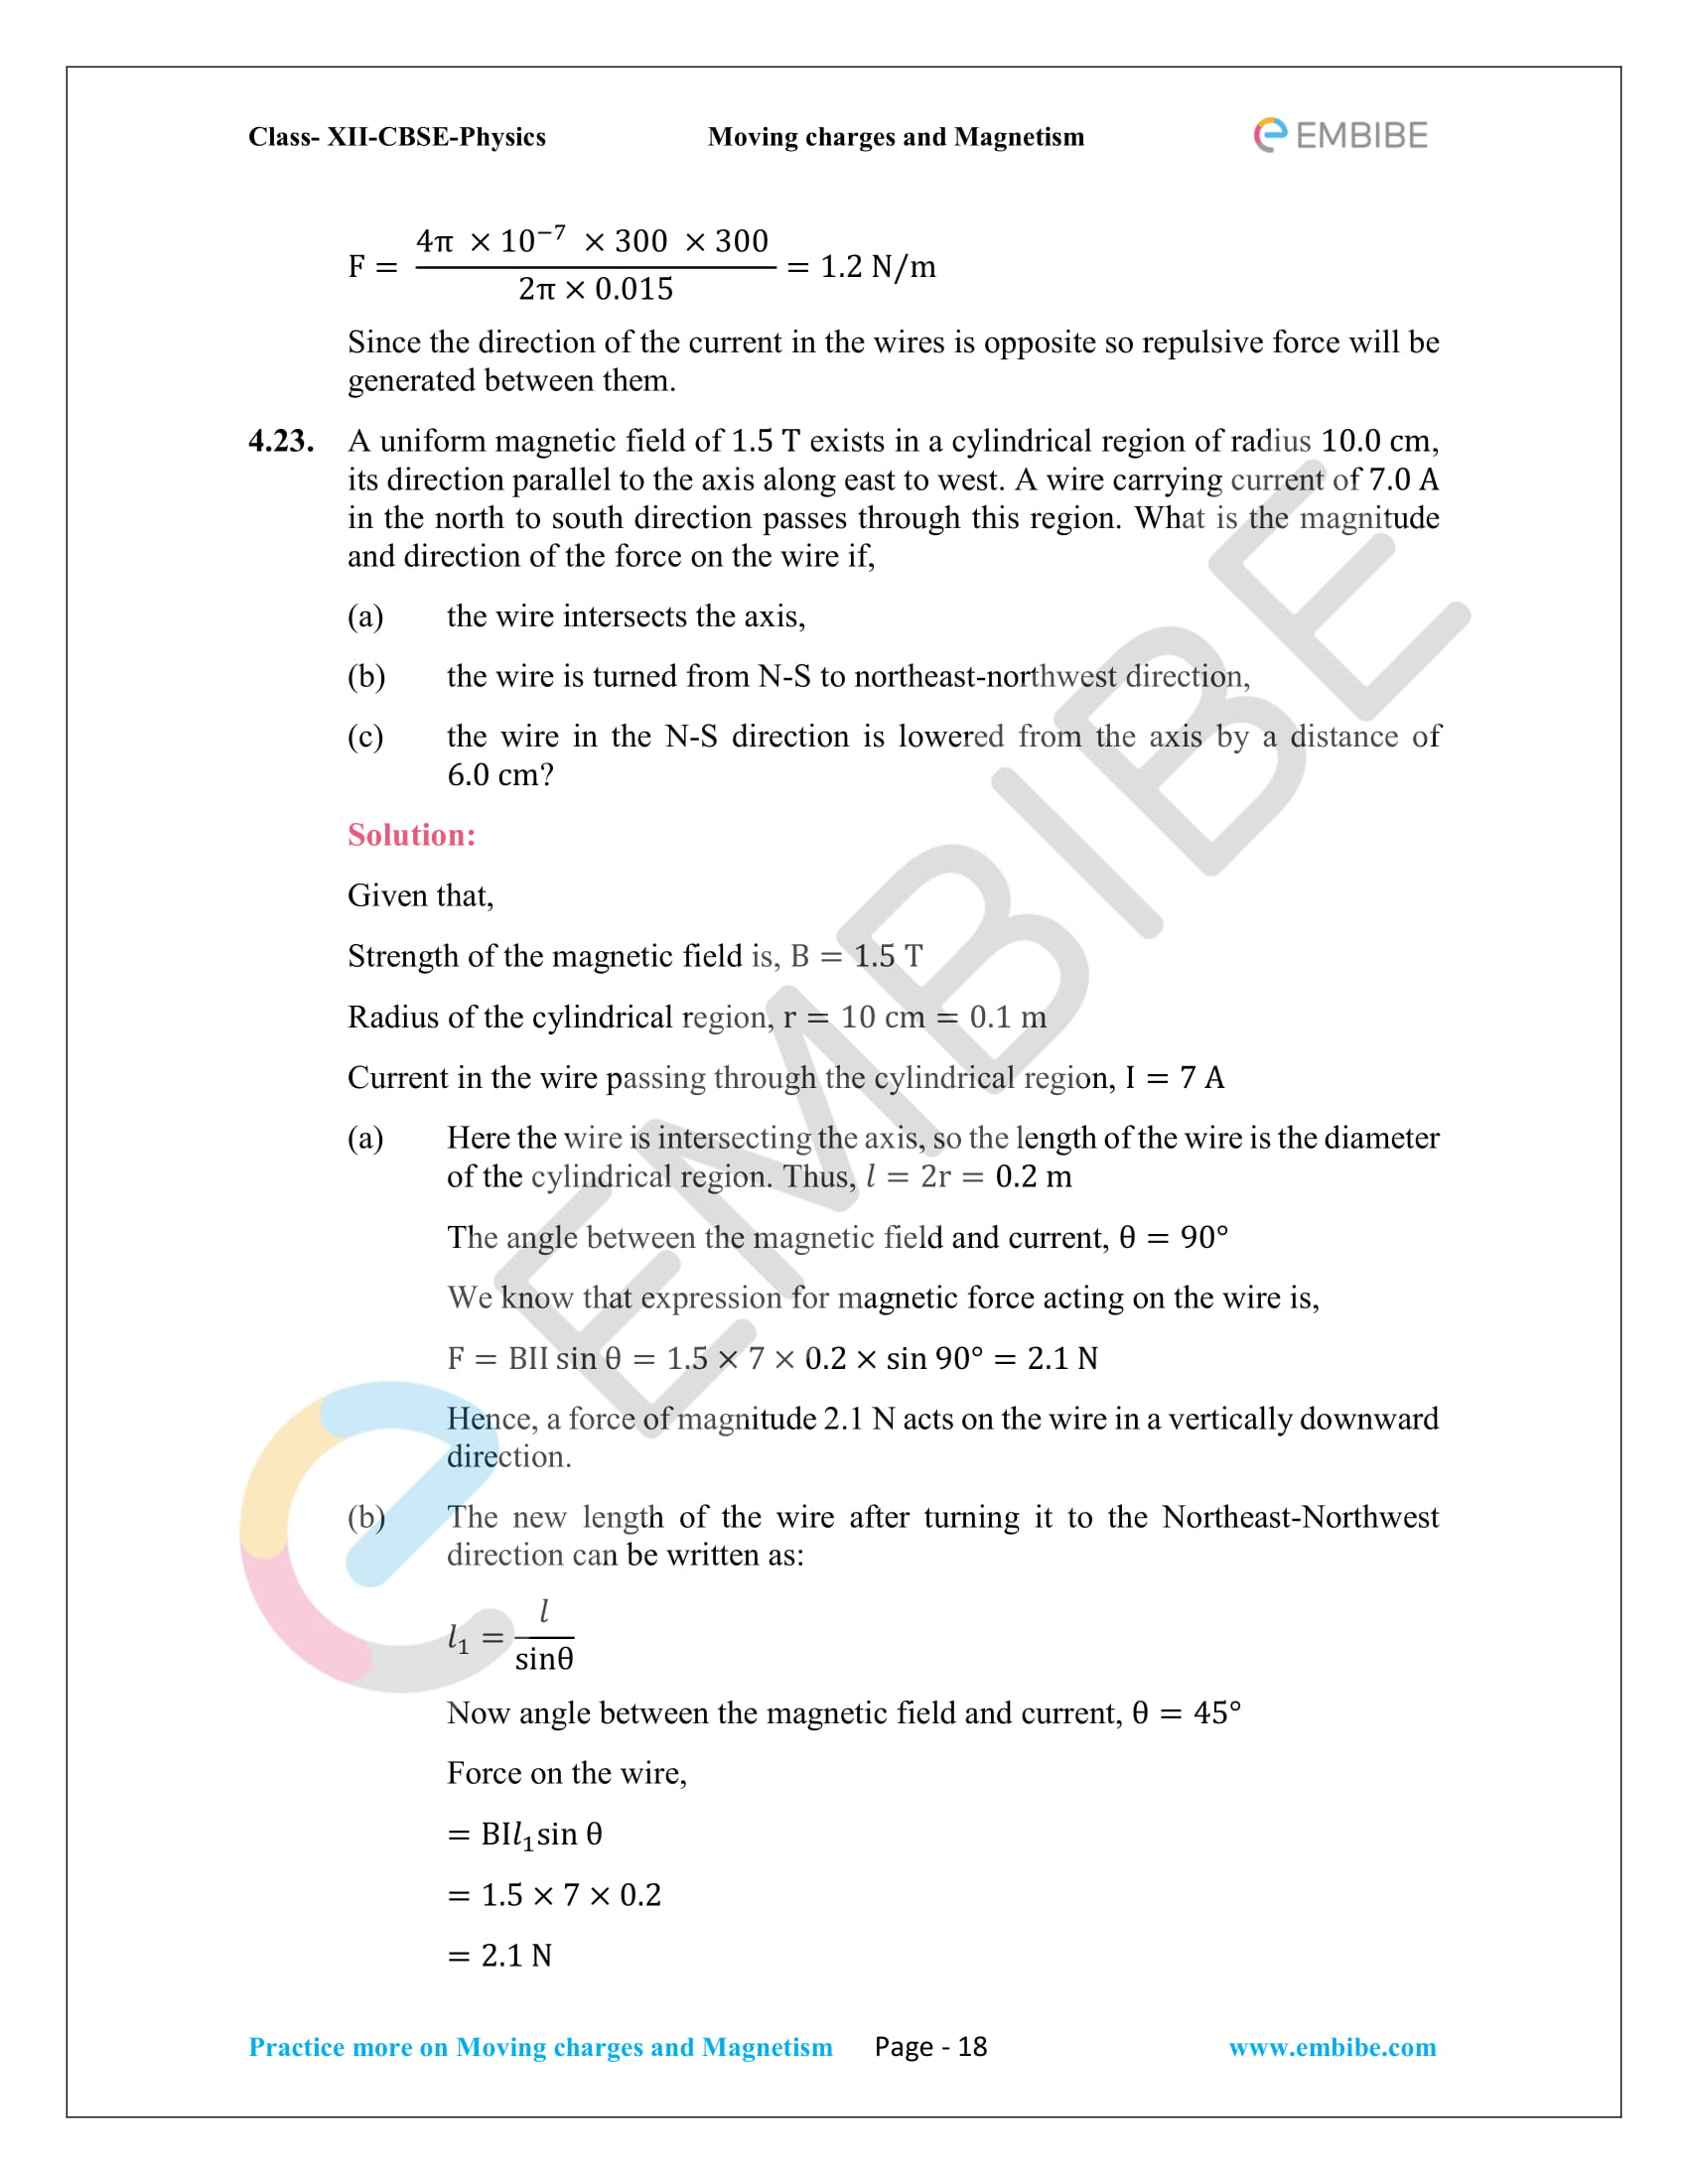 NCERT_Grade 12_Physics_Ch_04_Moving Charges and Magnetism-18